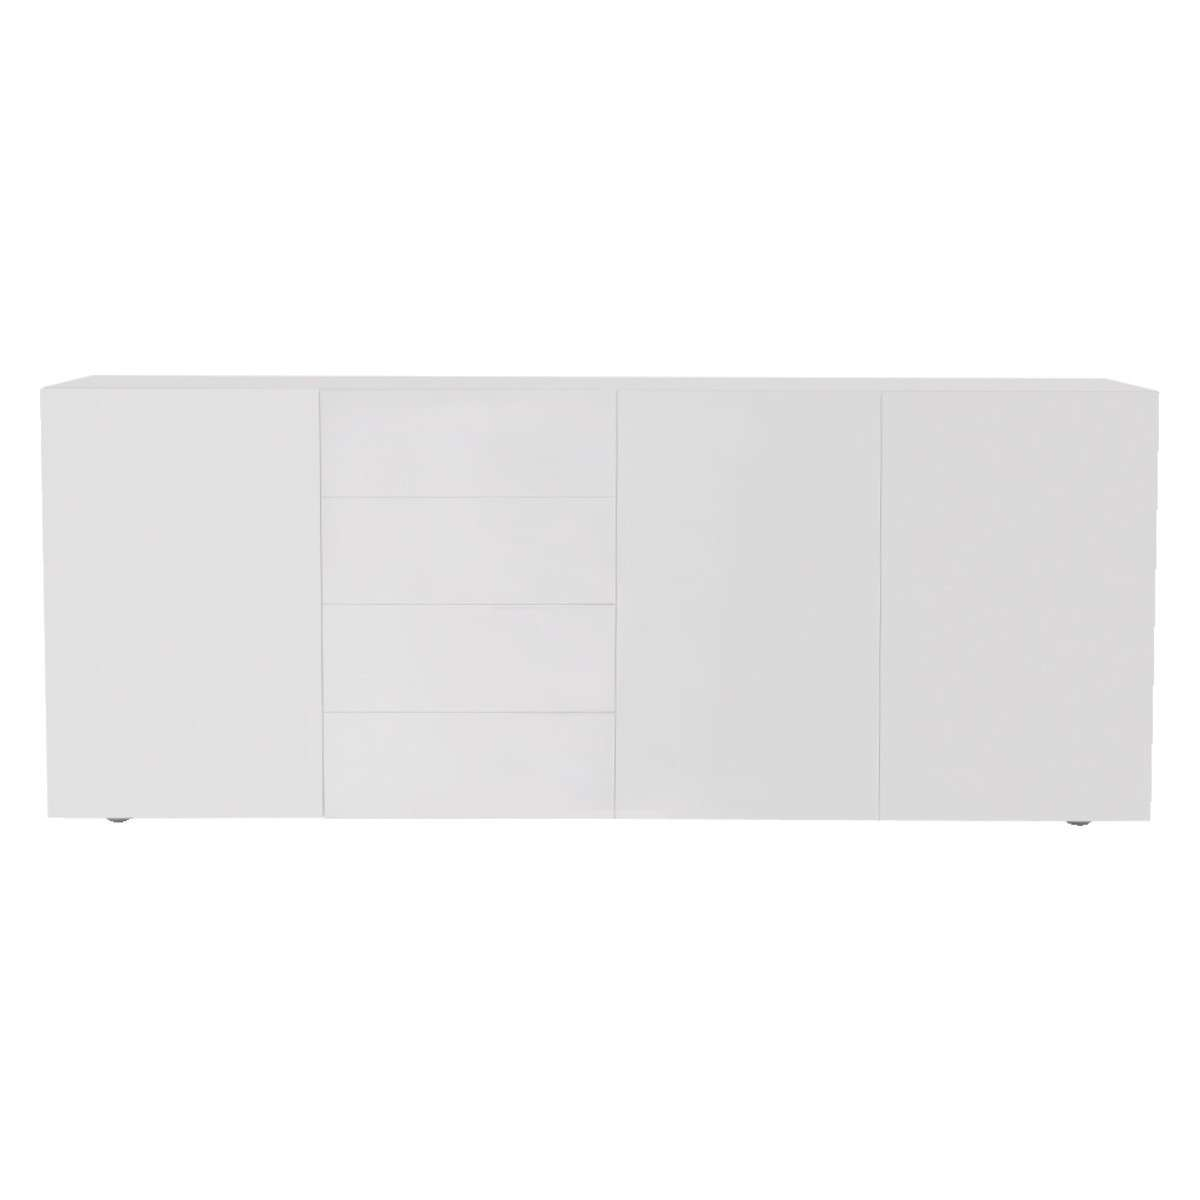 Aspen White High Gloss Sideboard | Buy Now At Habitat Uk Within White High Gloss Sideboards (View 14 of 20)